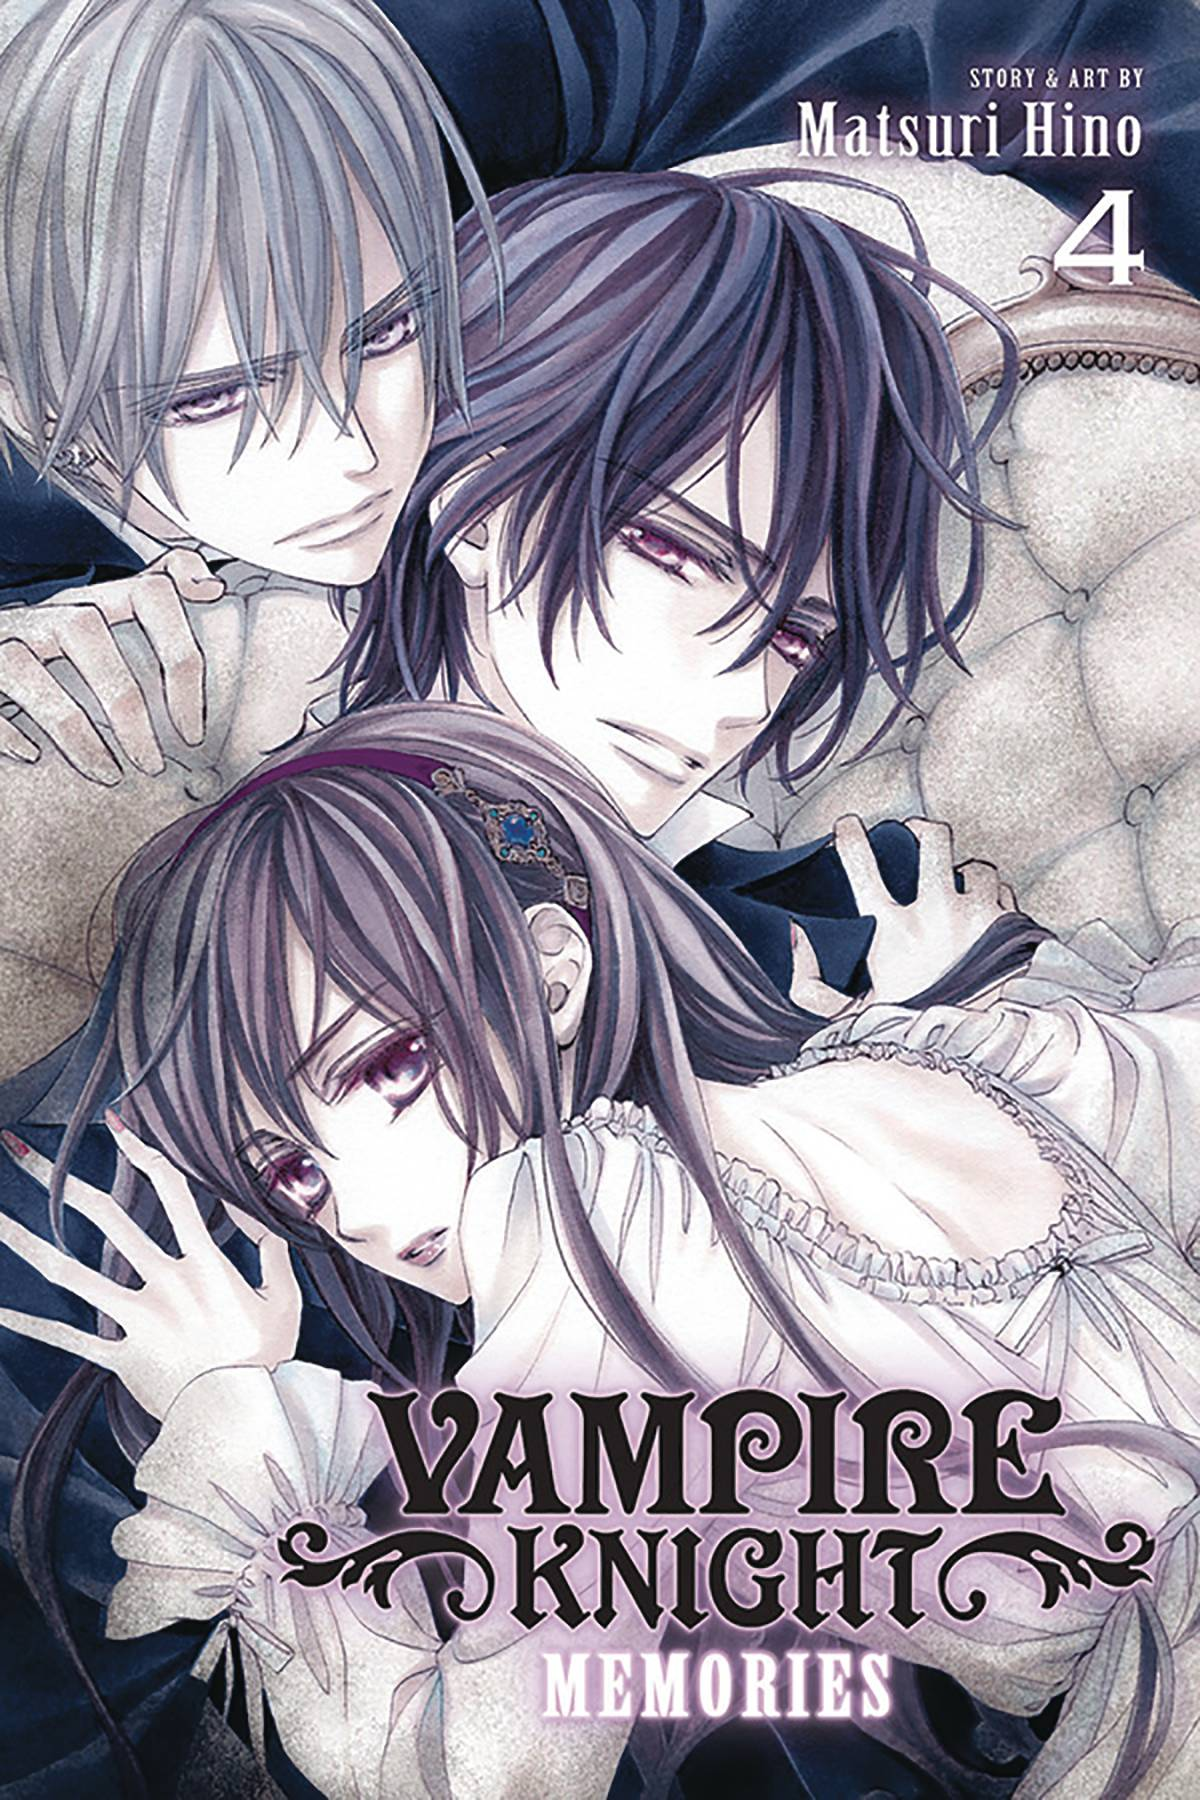 VAMPIRE KNIGHT MEMORIES GN VOL 04